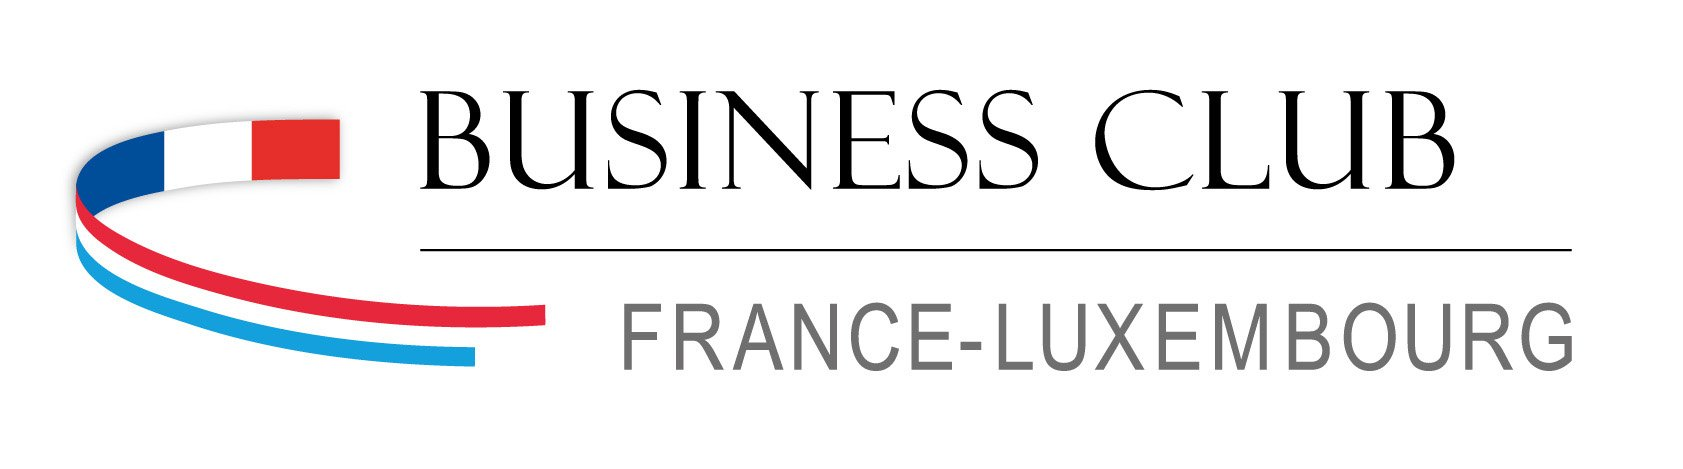 Business club France Luxembourg